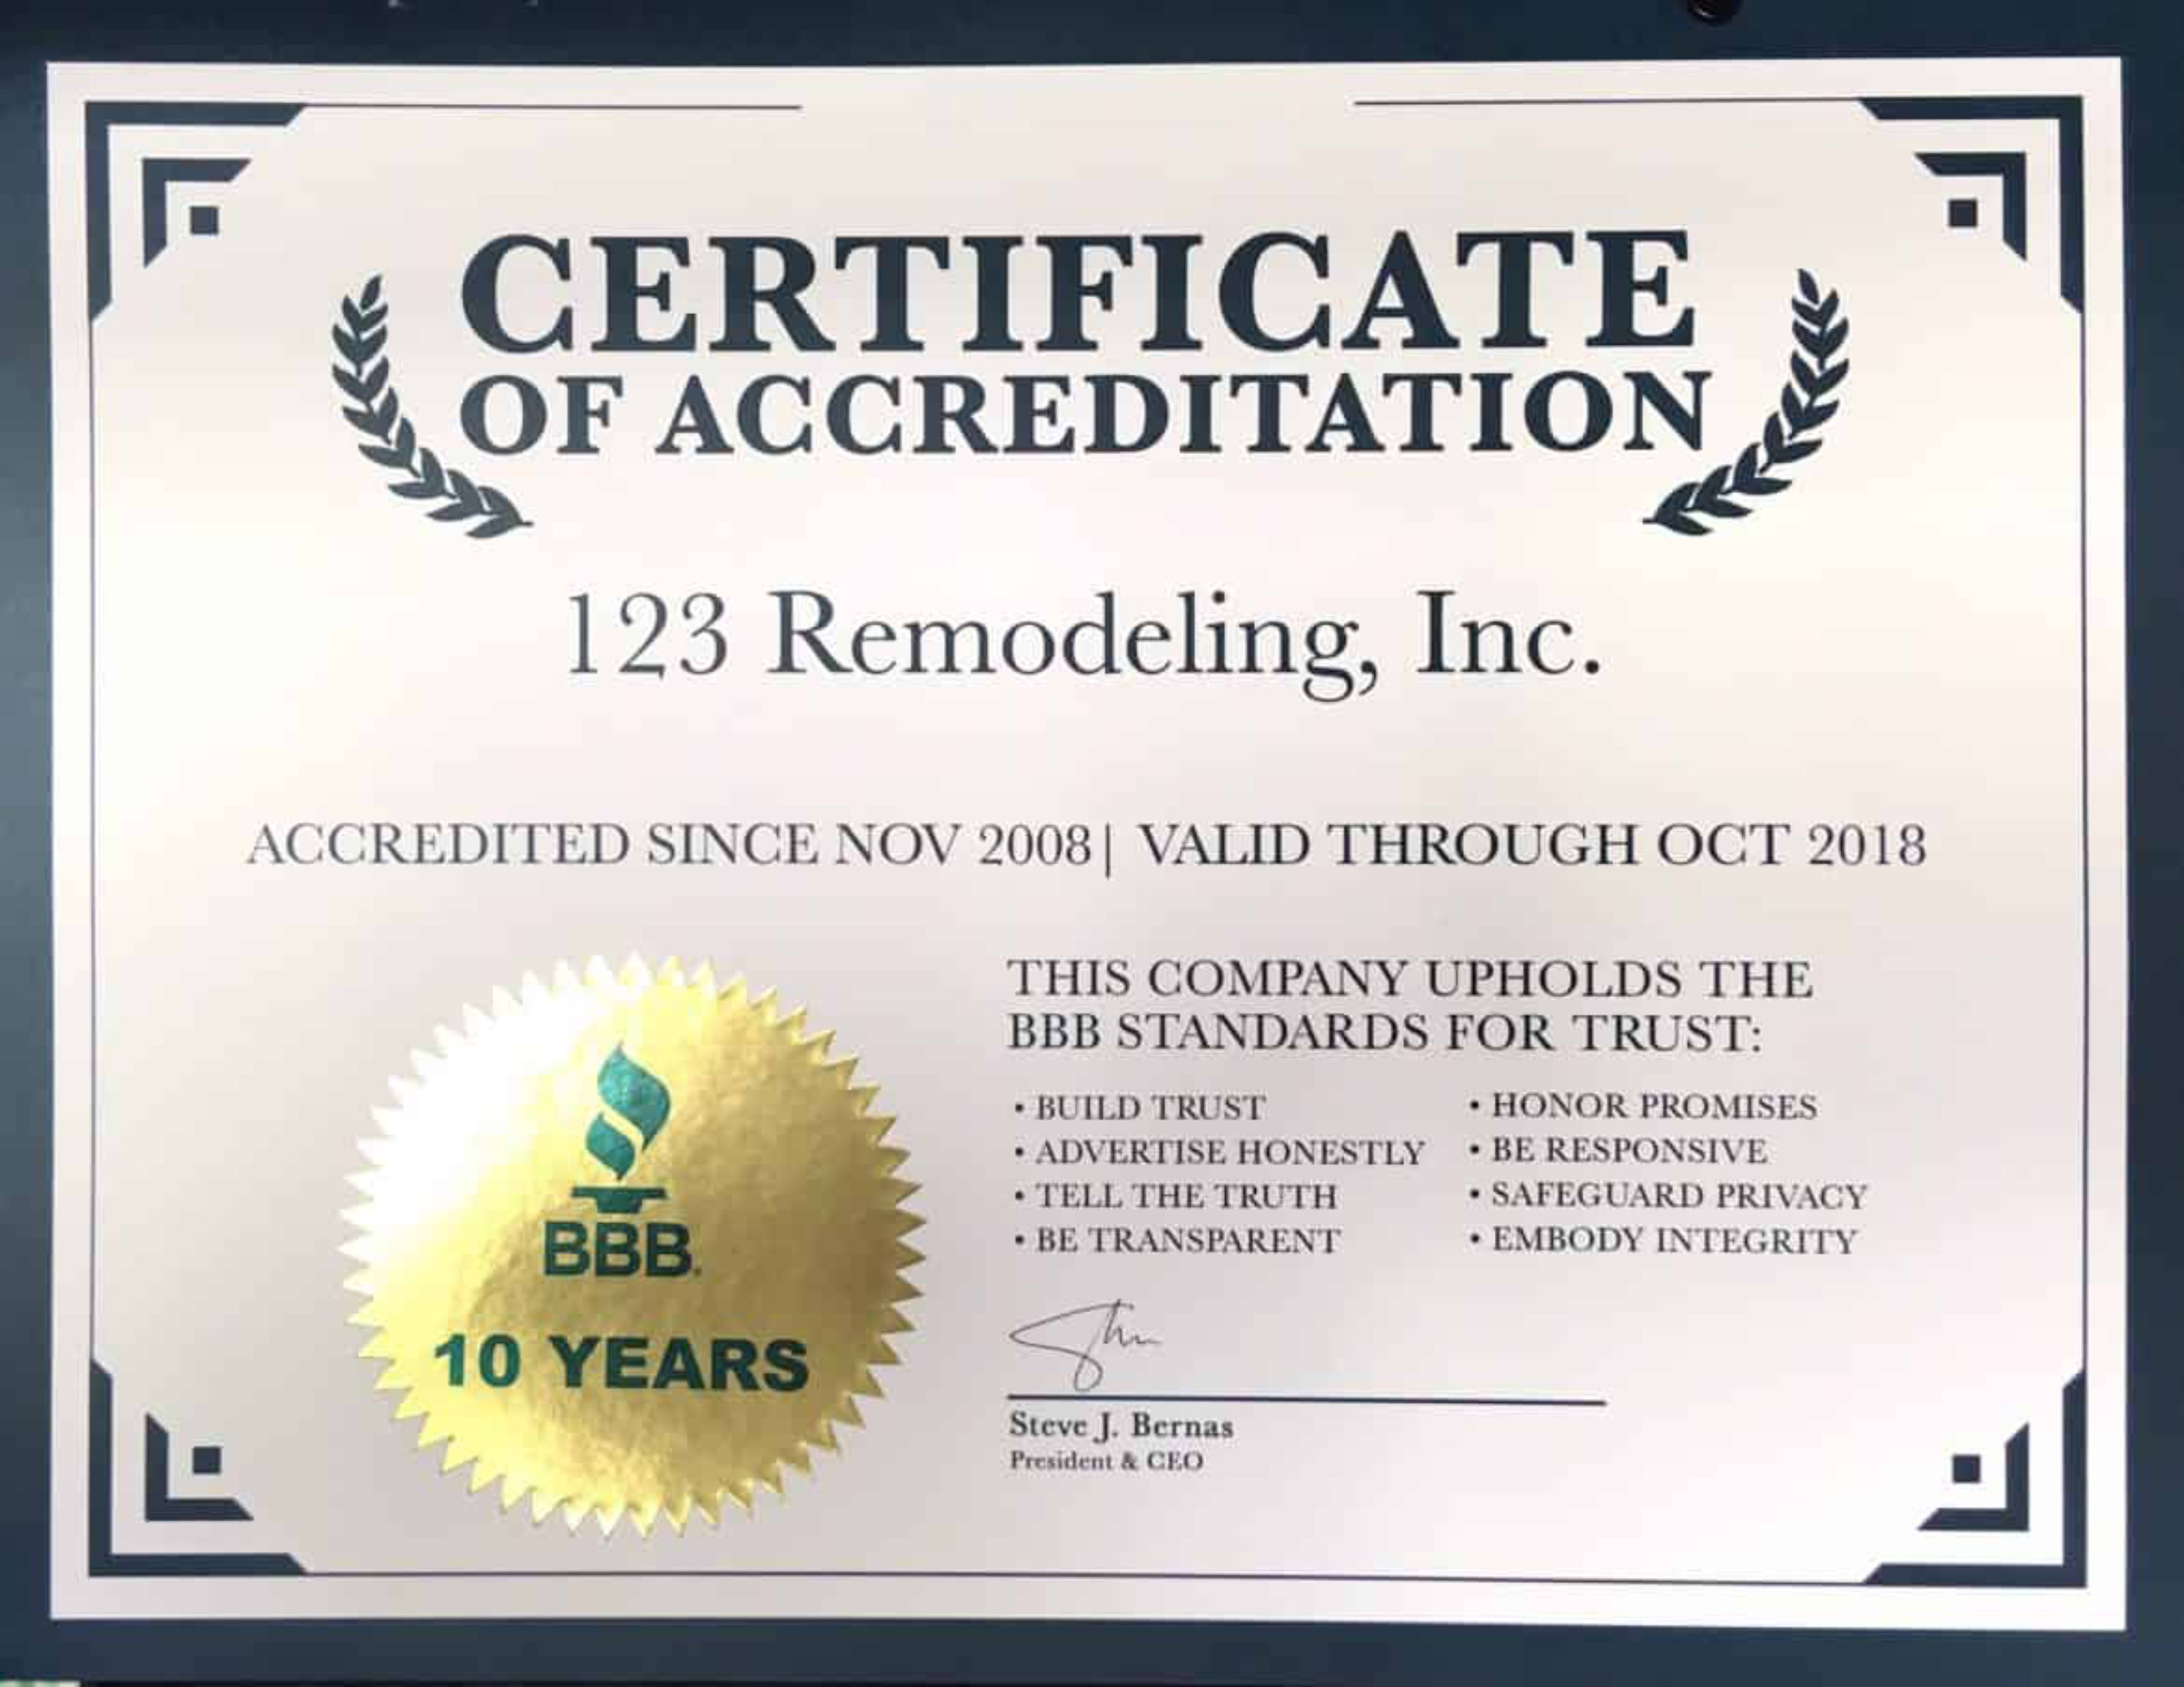 123 Remodeling BBB Certificate of Accreditation